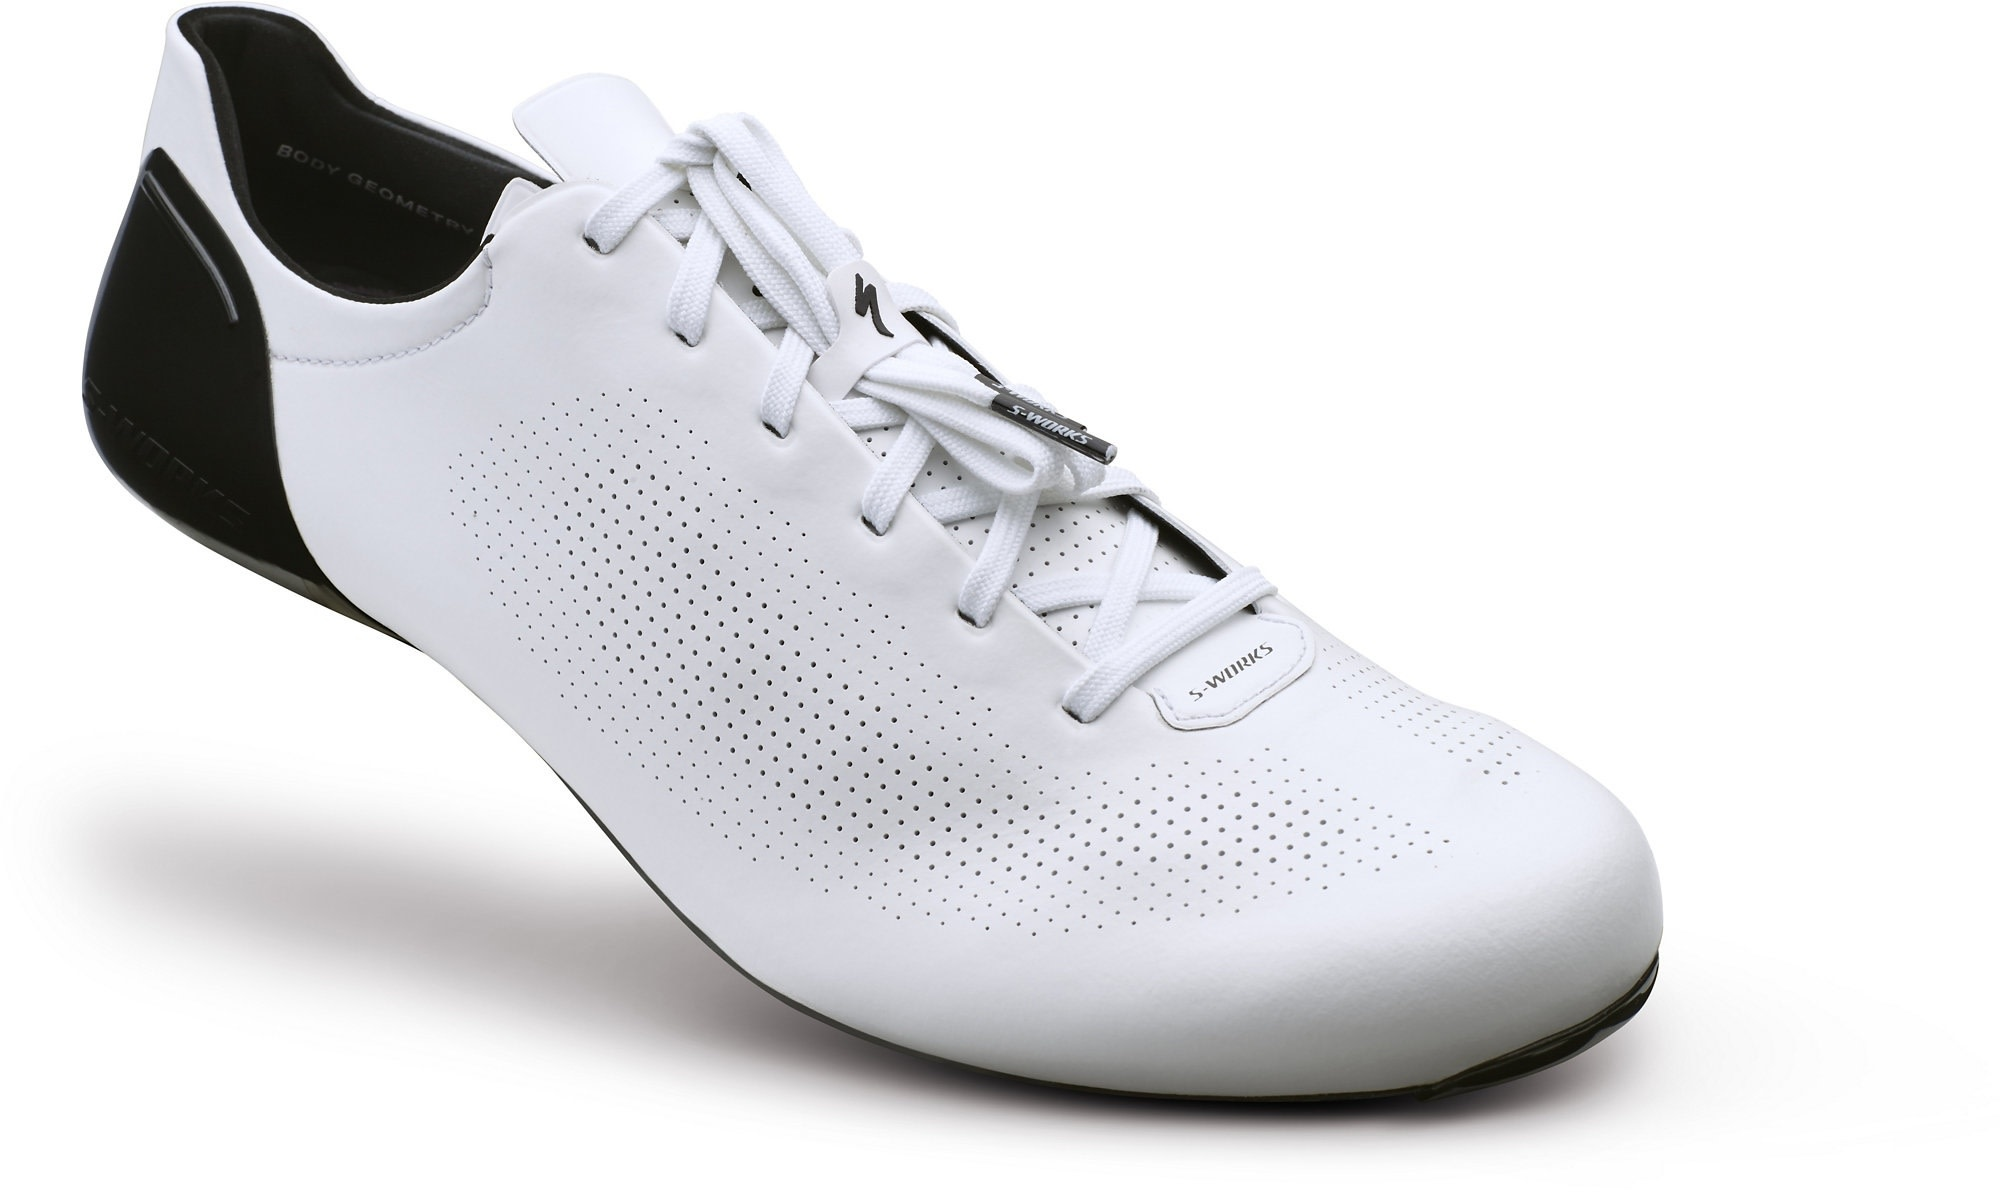 SPECIALIZED S-WORKS SUB6 ROAD SHOE WHT 43.5/10.25